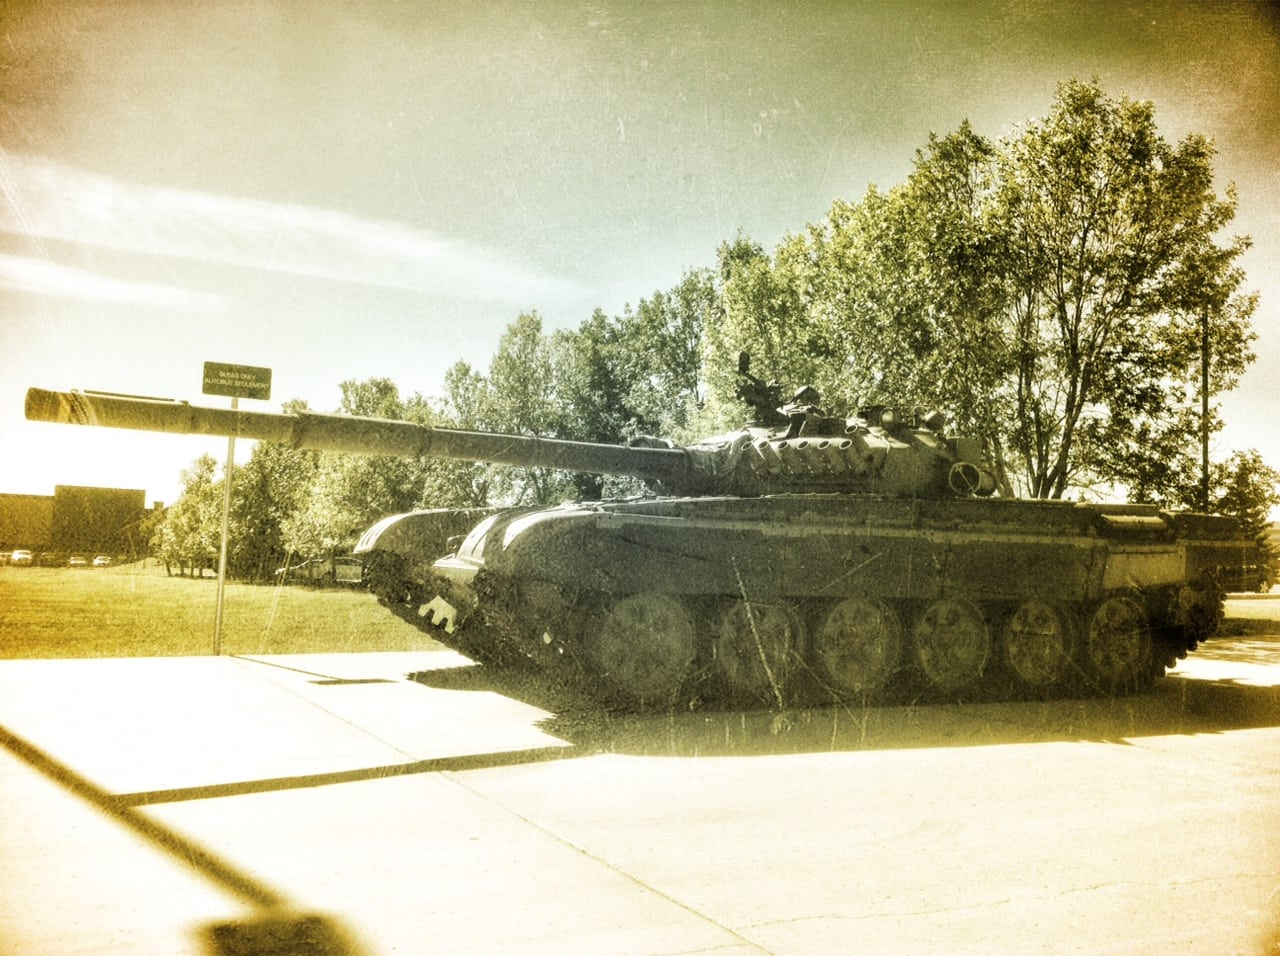 Tank-at-Military-Museums-in-Calgary